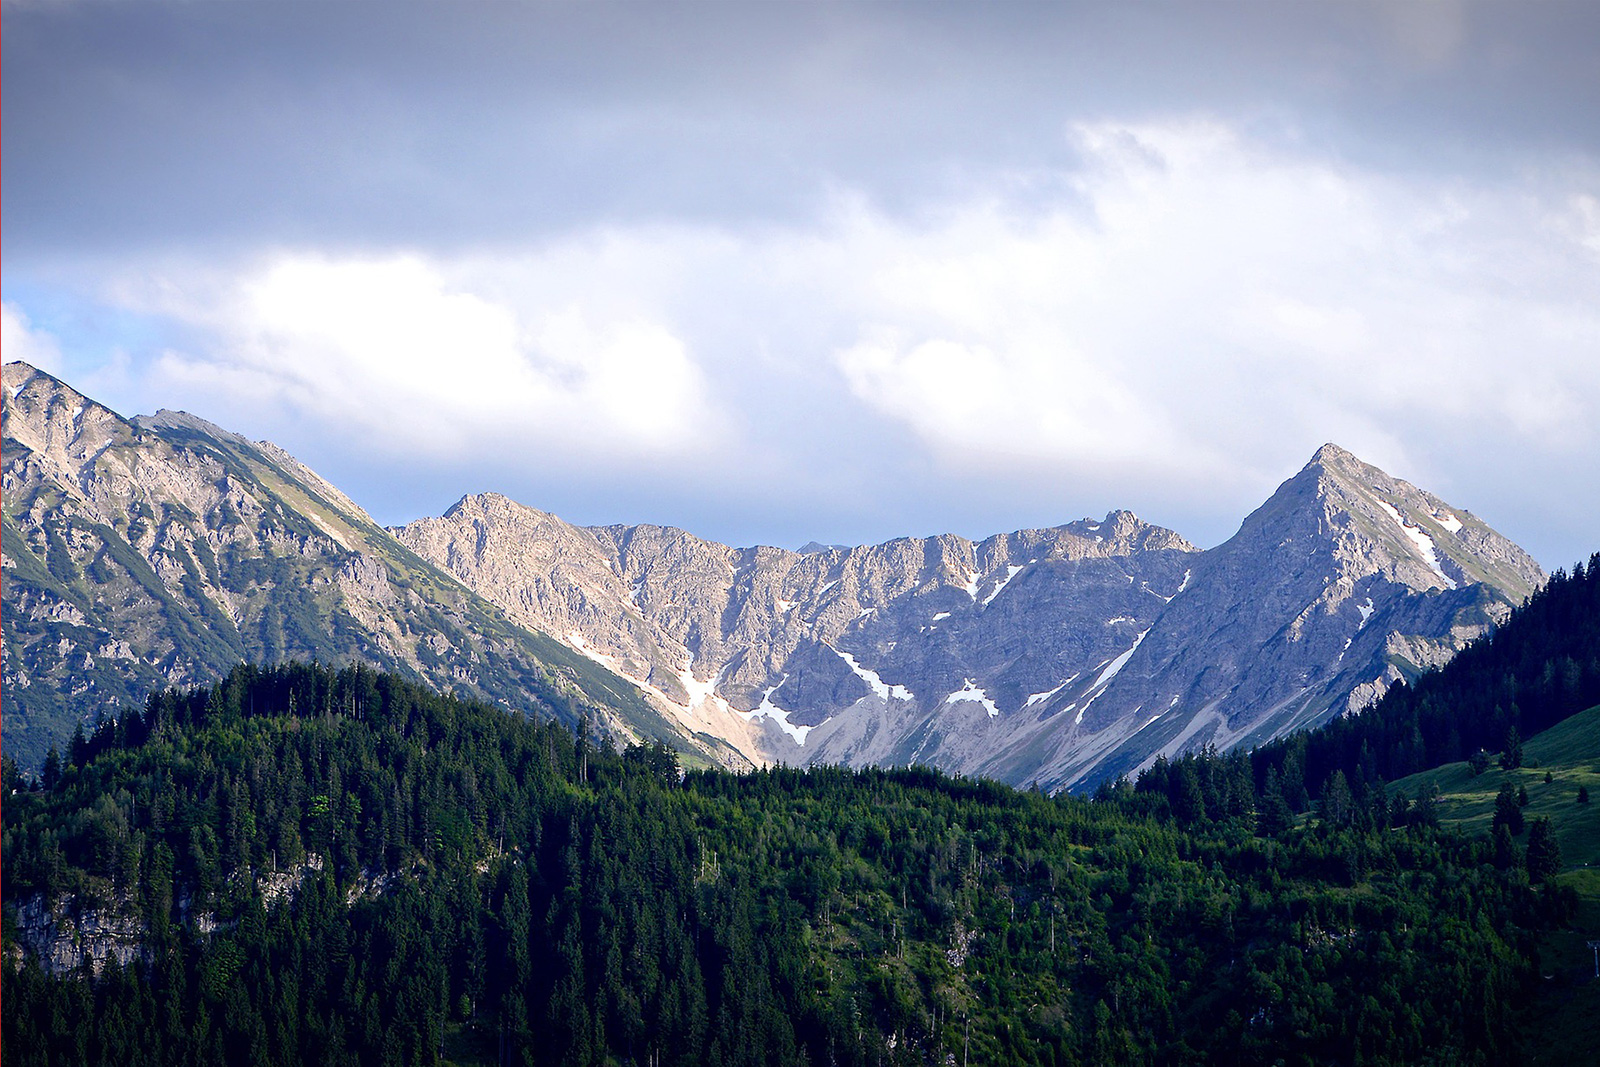 alps_mountains-2434154_1920